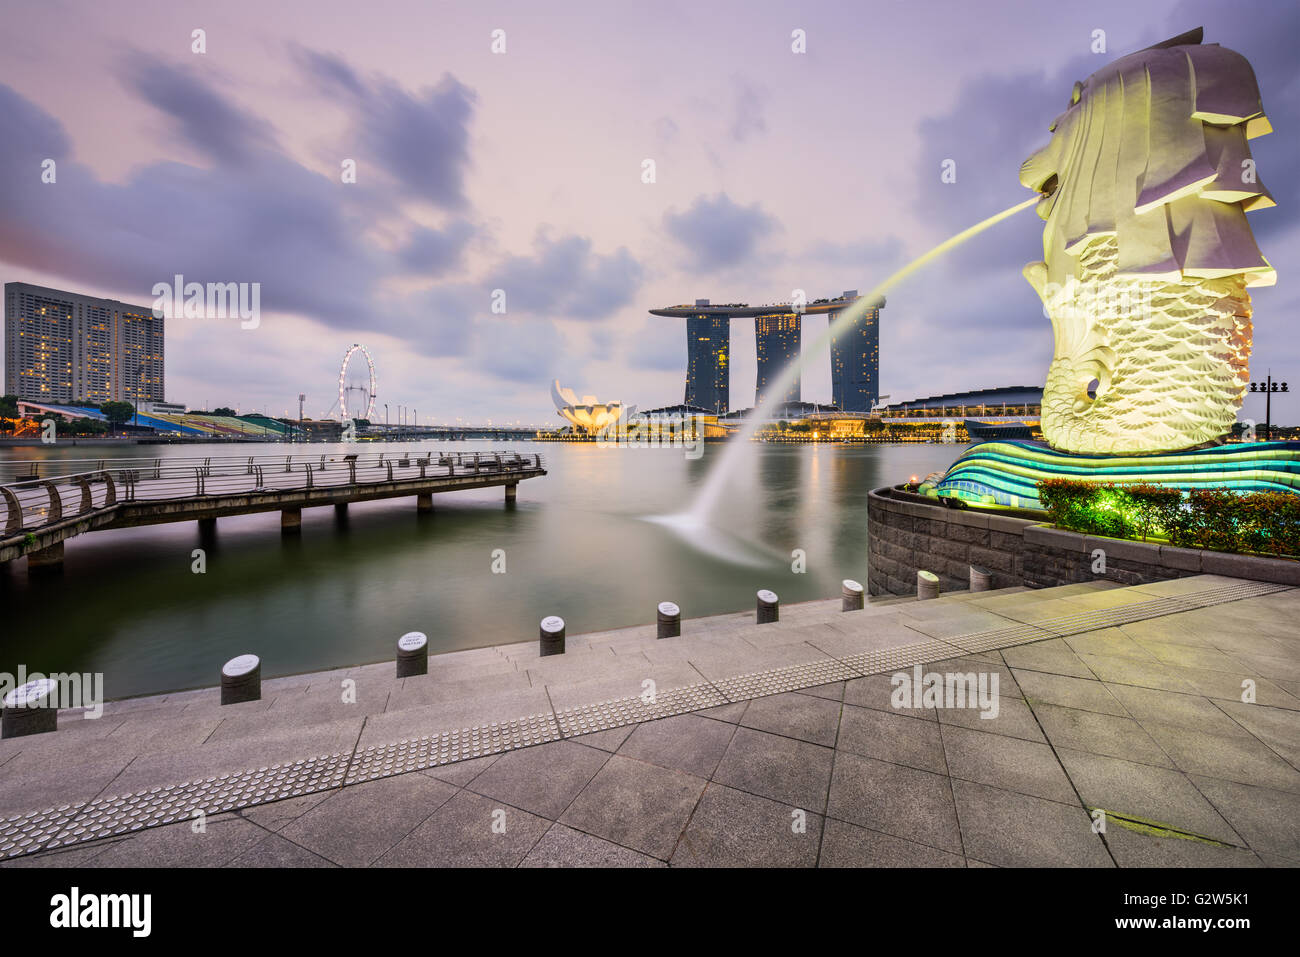 The Merlion fountain at Marina Bay in Singapore. - Stock Image